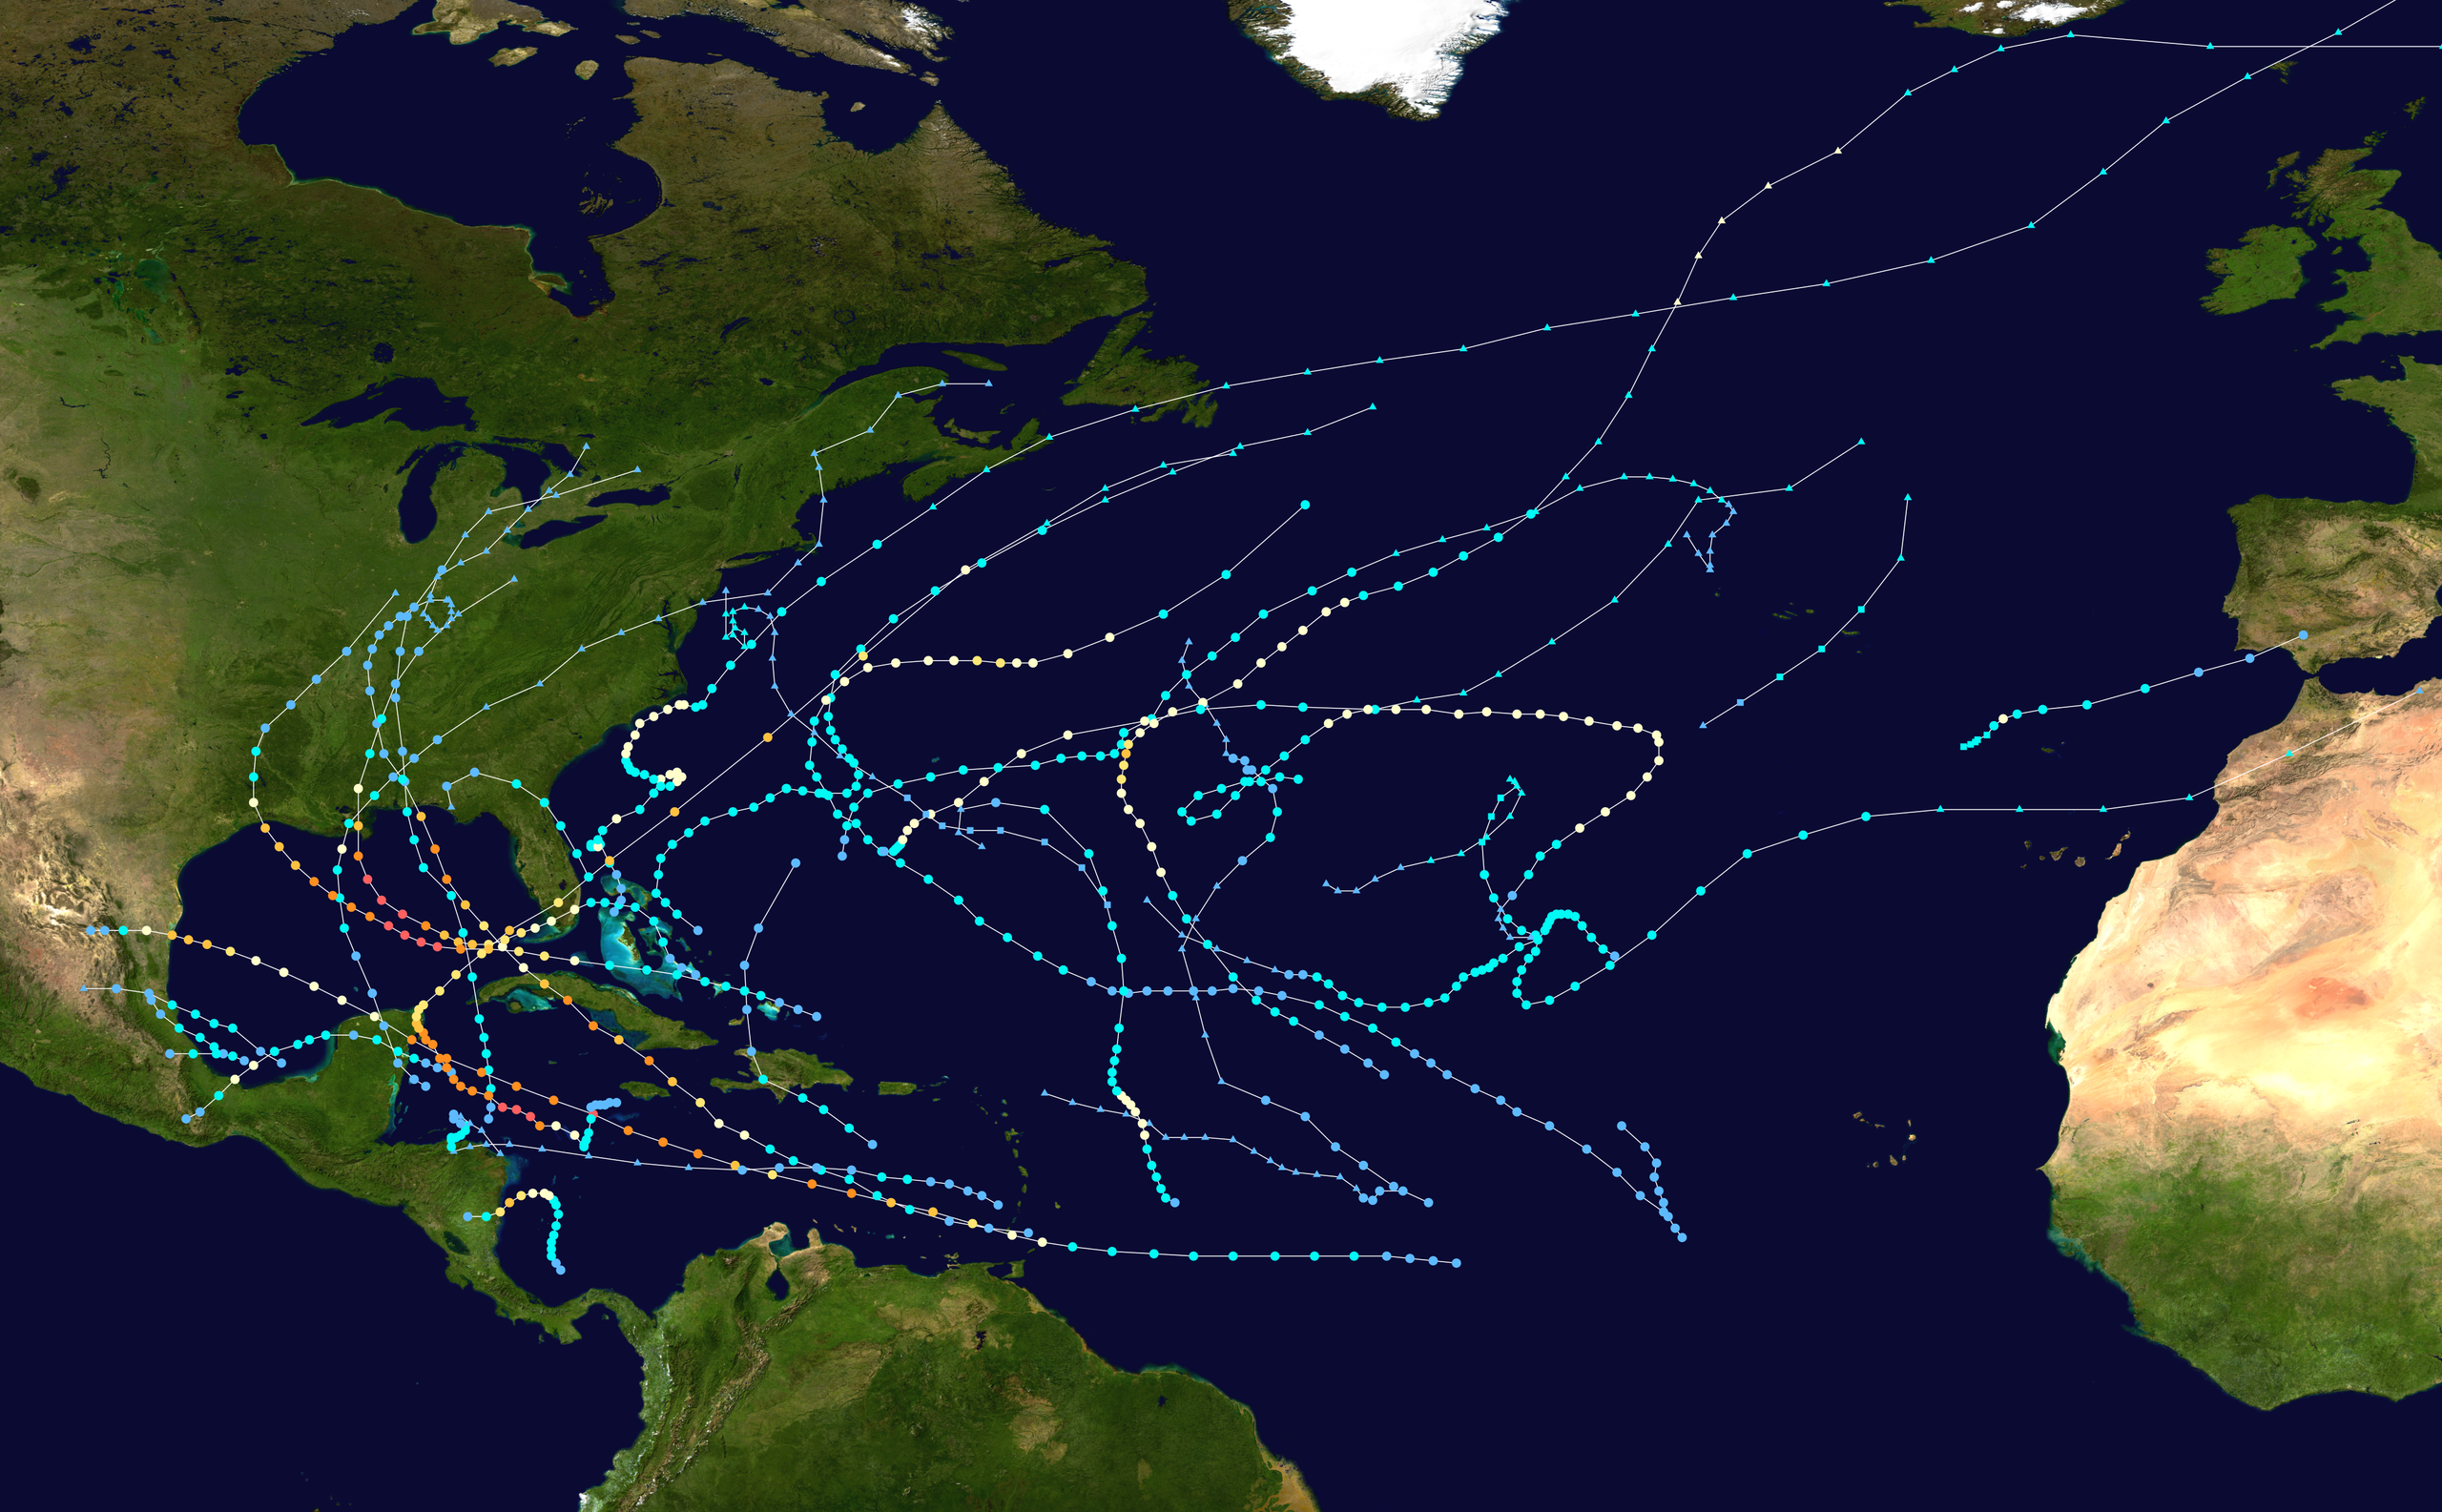 Here's a map of the Atlantic Hurricane summary from 2005.